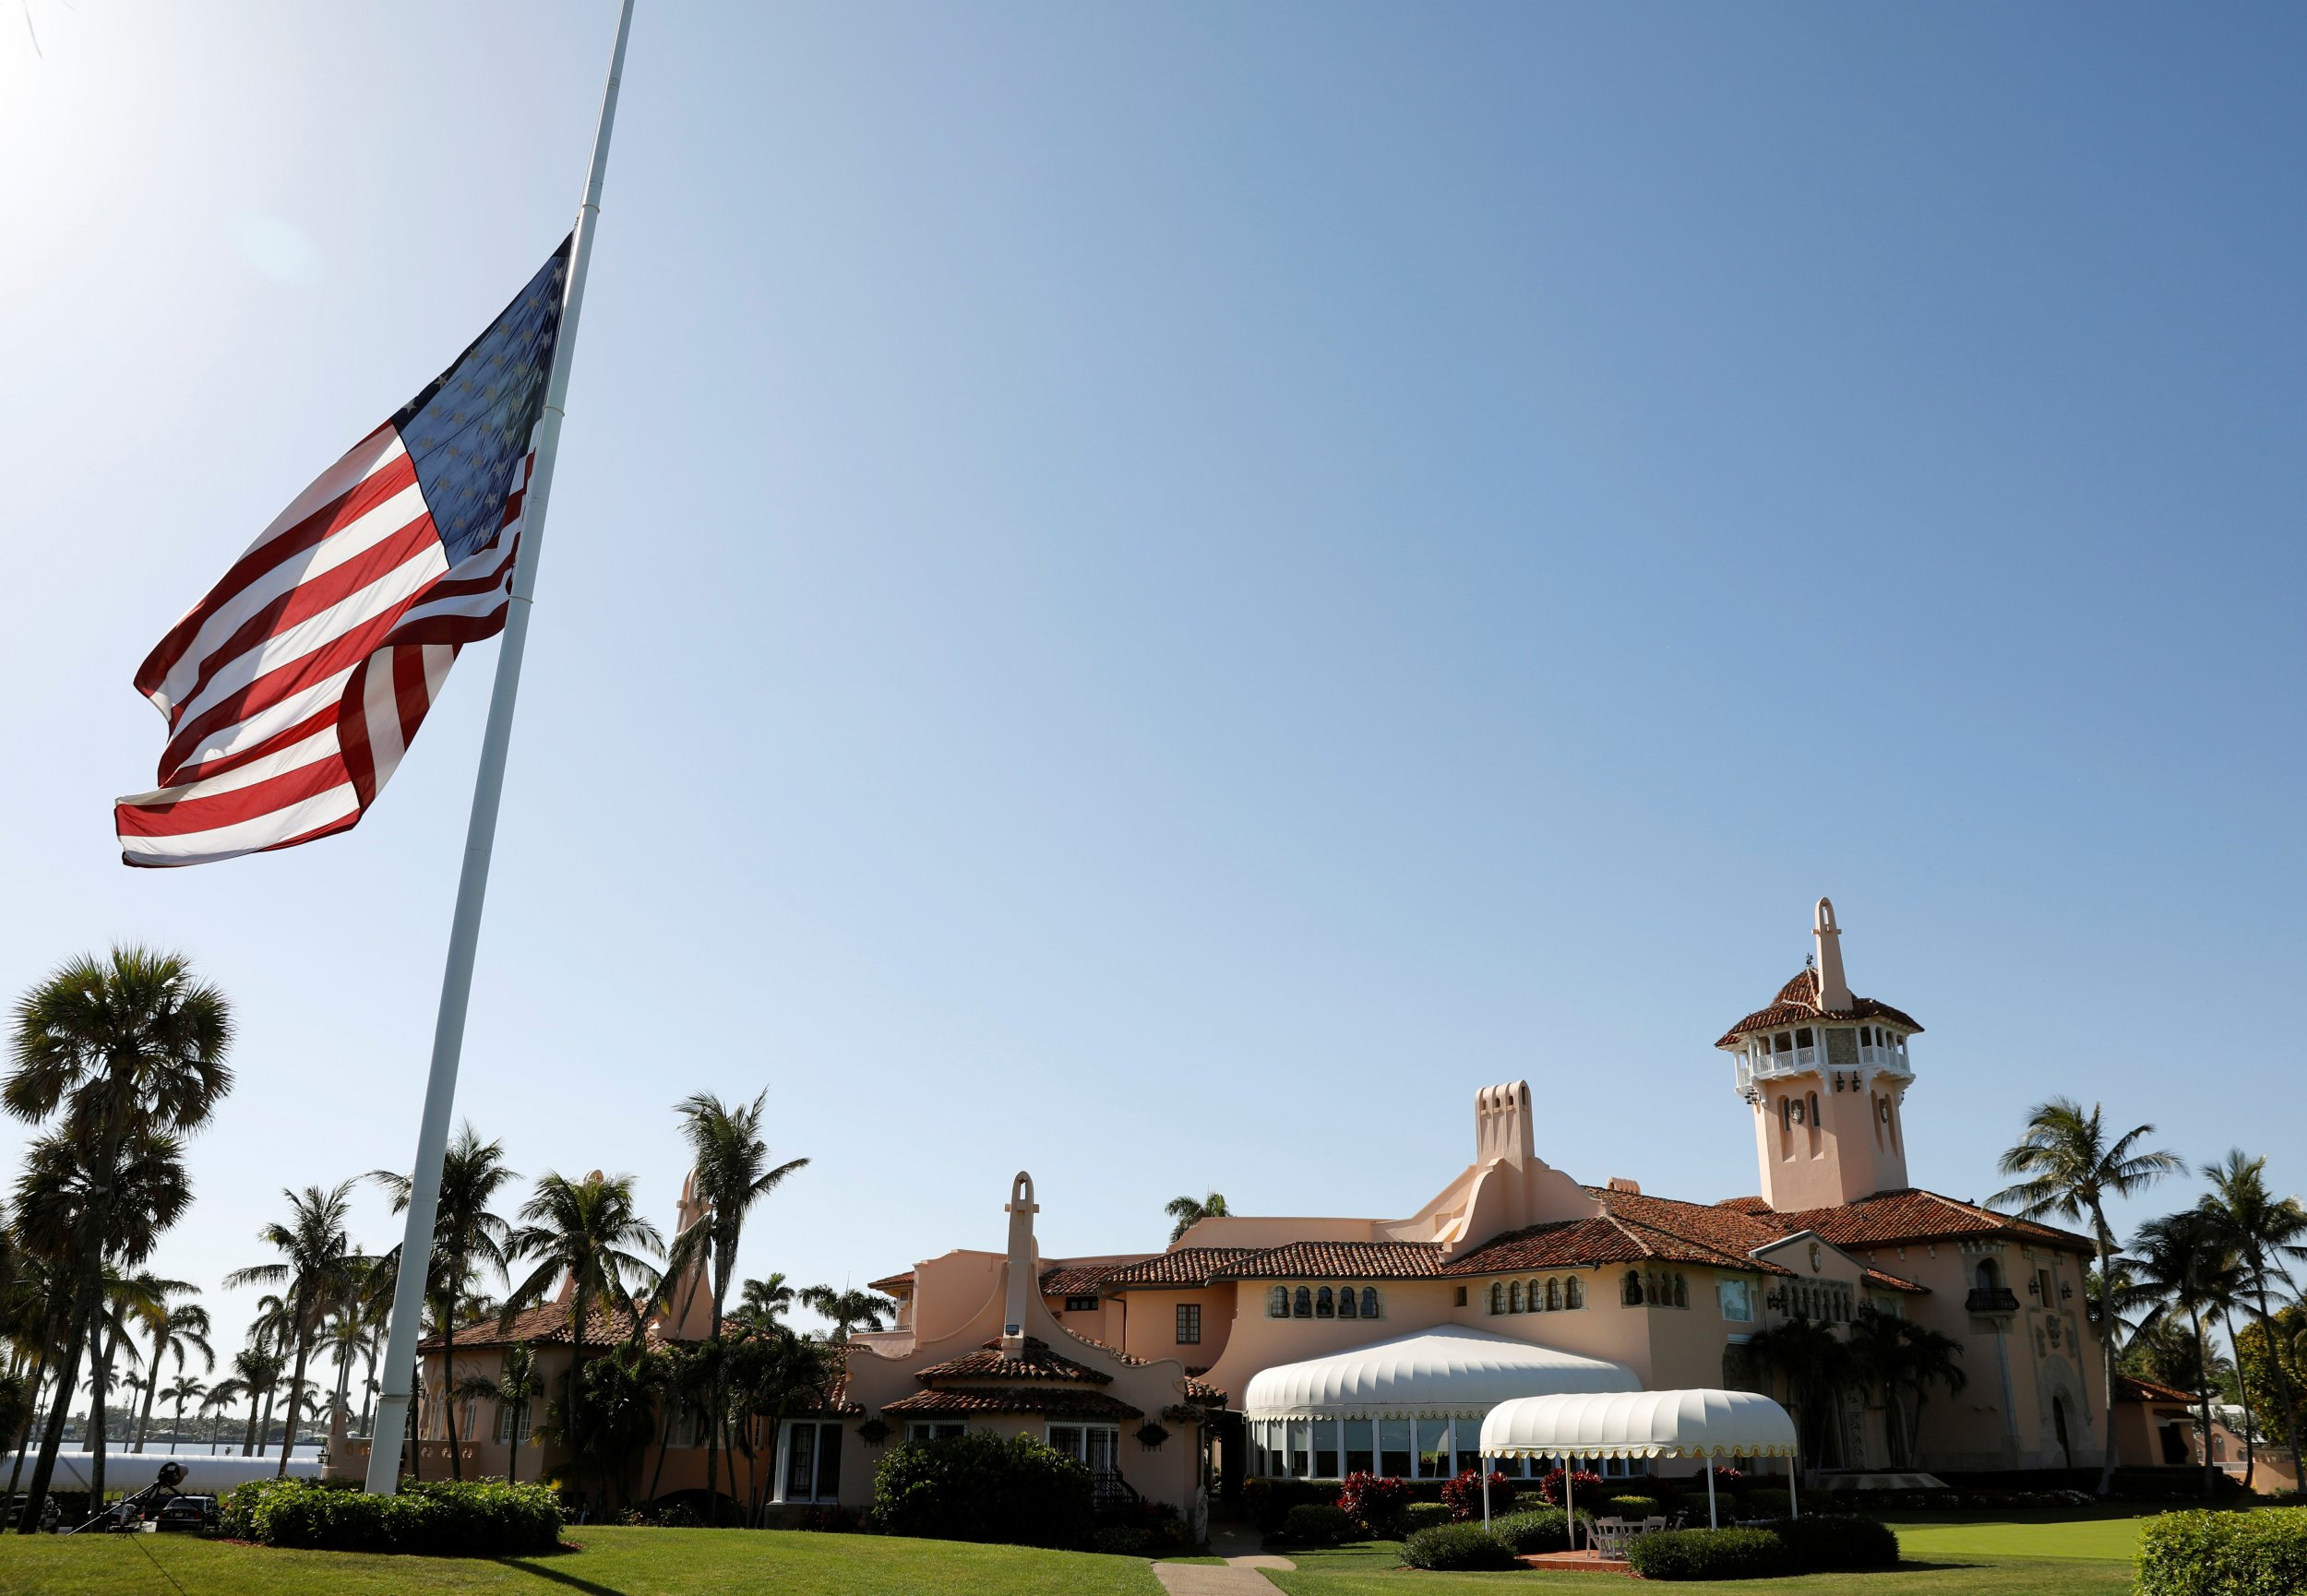 Trump's Mar-a-Lago golf club wants to hire 40 new foreign workers under the H-2B visa work program